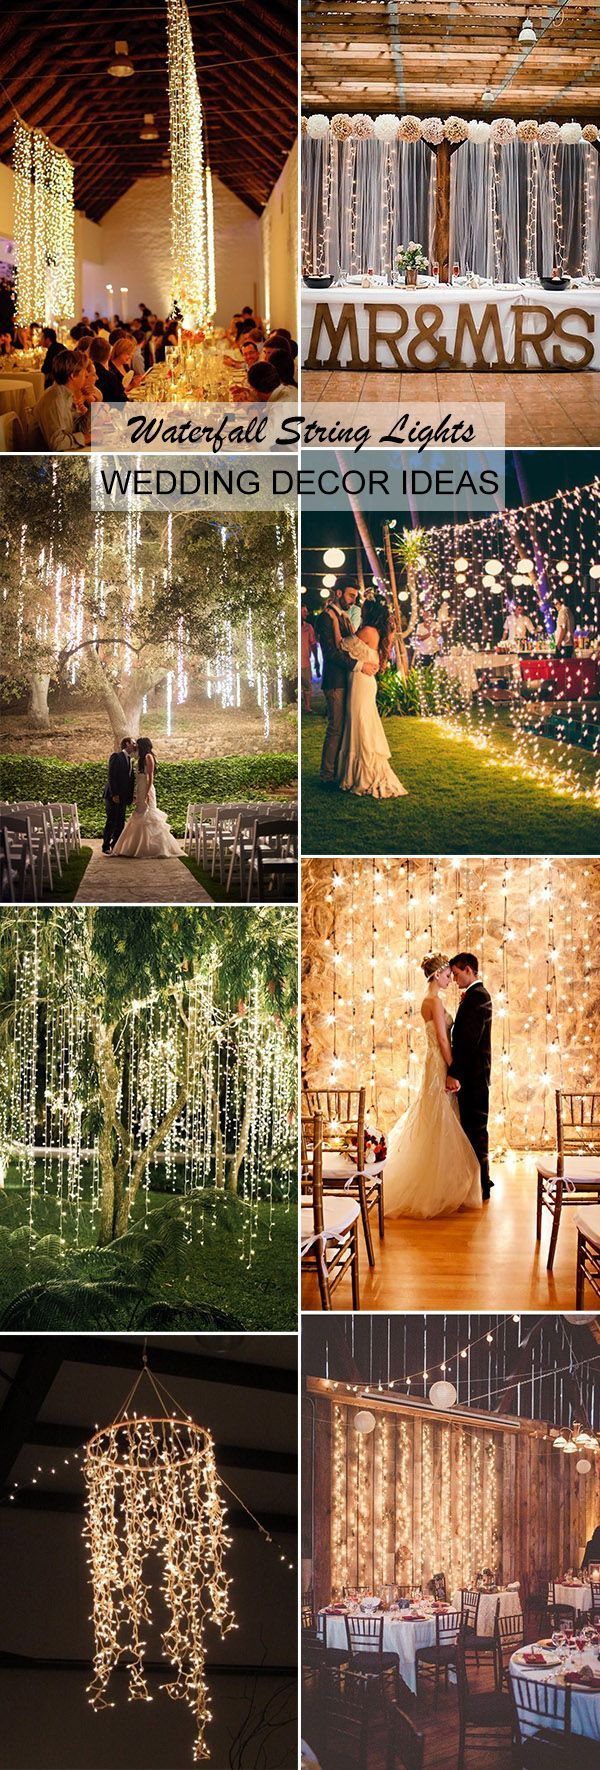 stunning and creative string lights wedding decor ideas